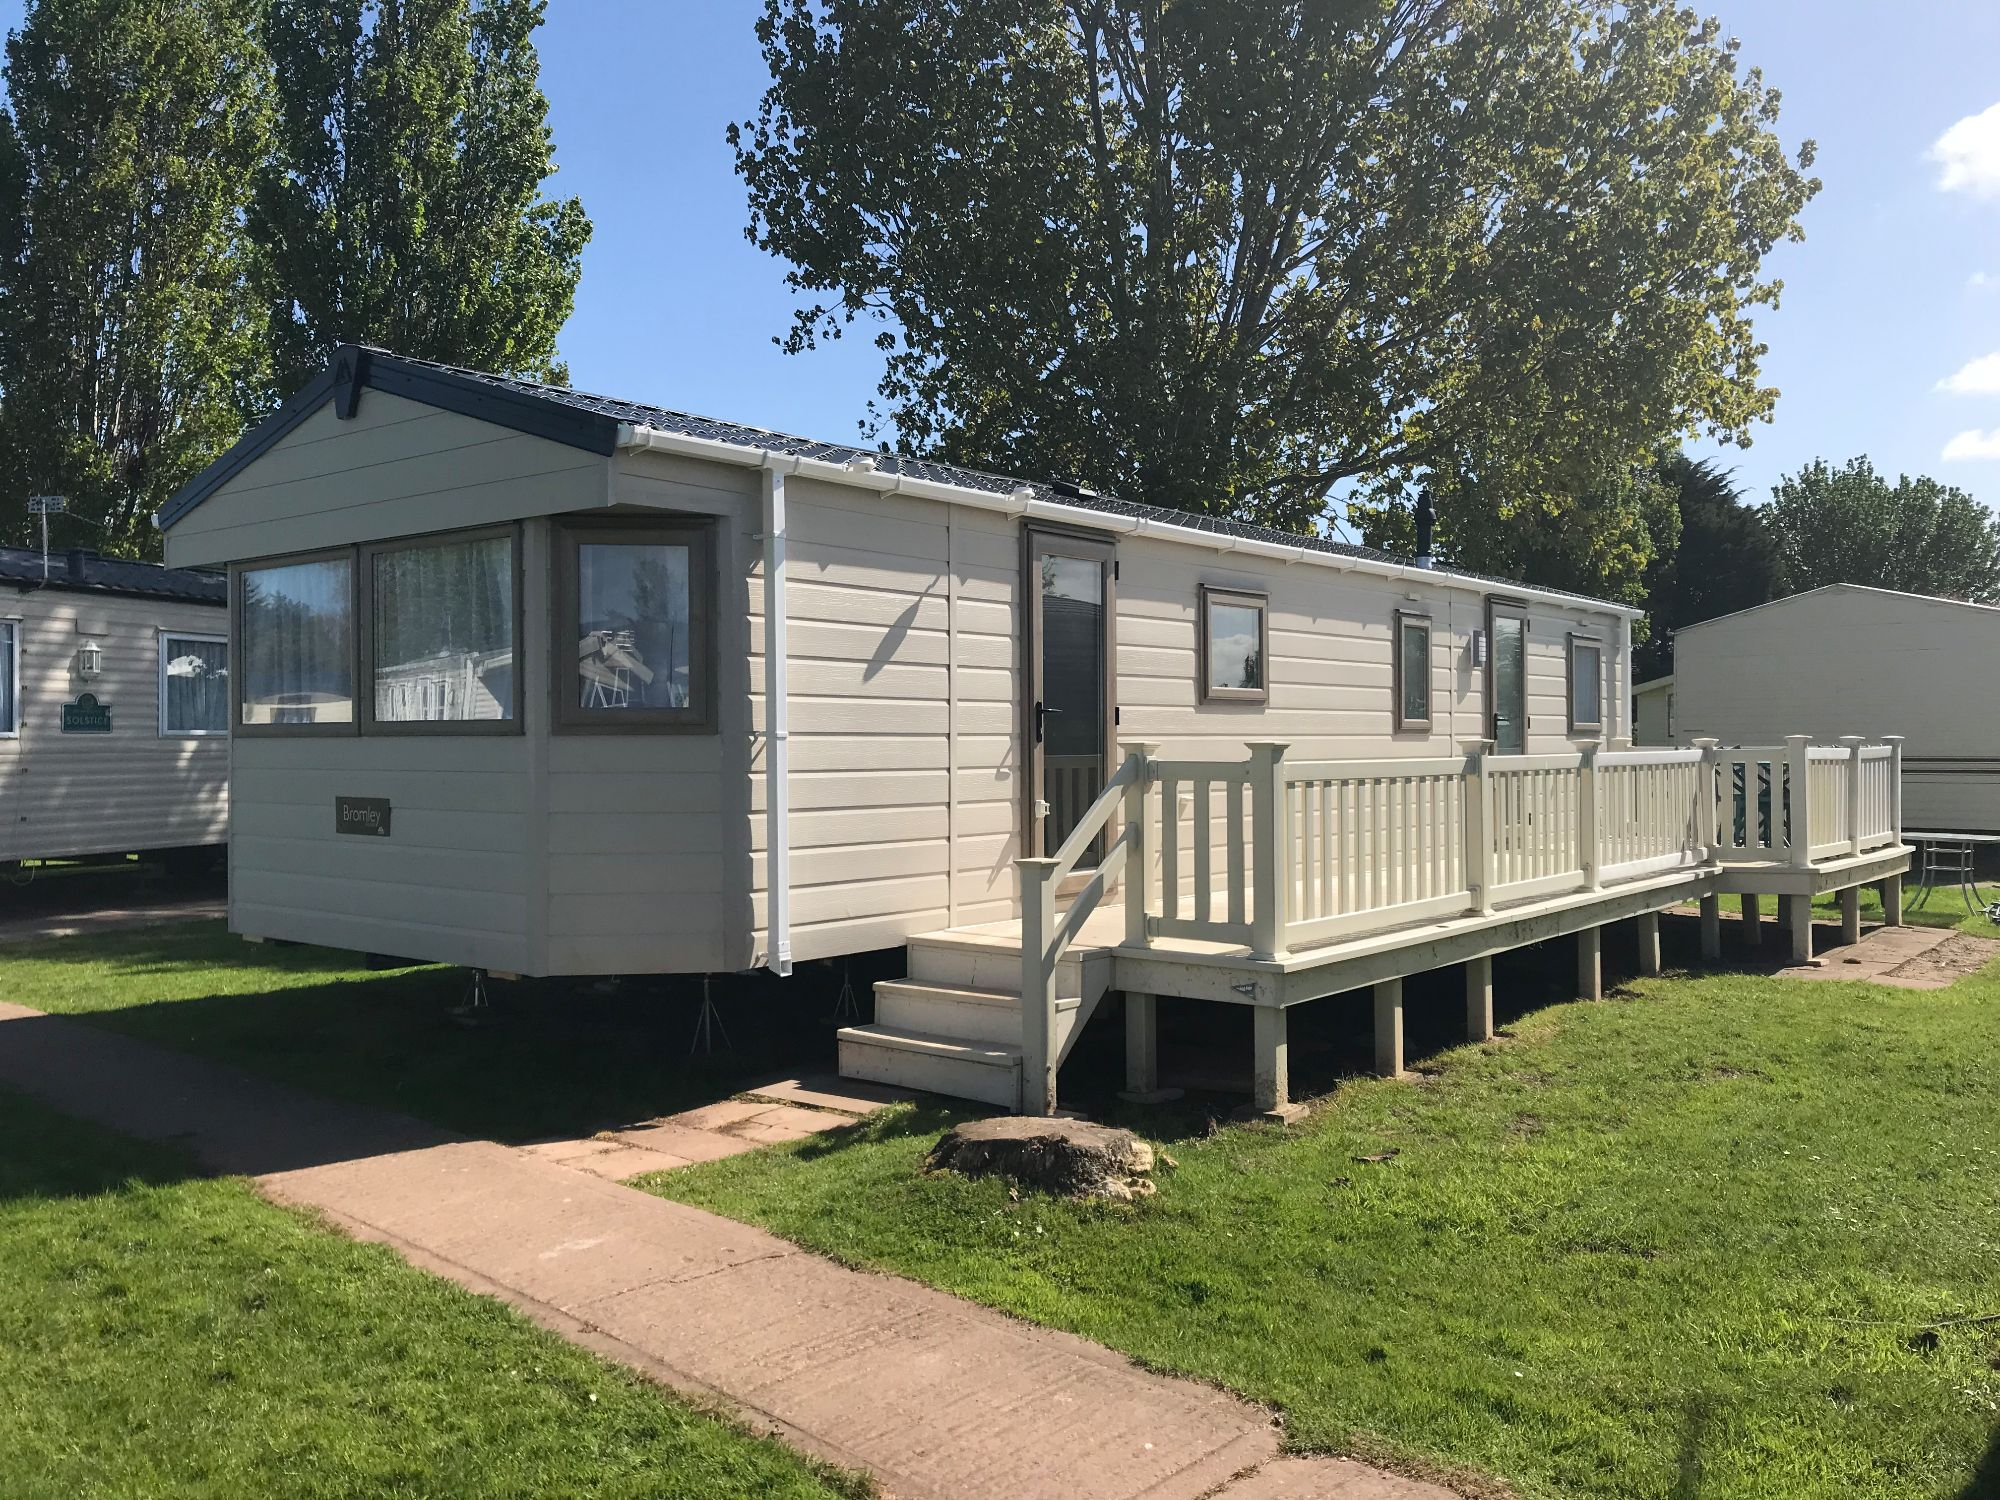 Butlins 4 Bedroom 10 berth Caravan